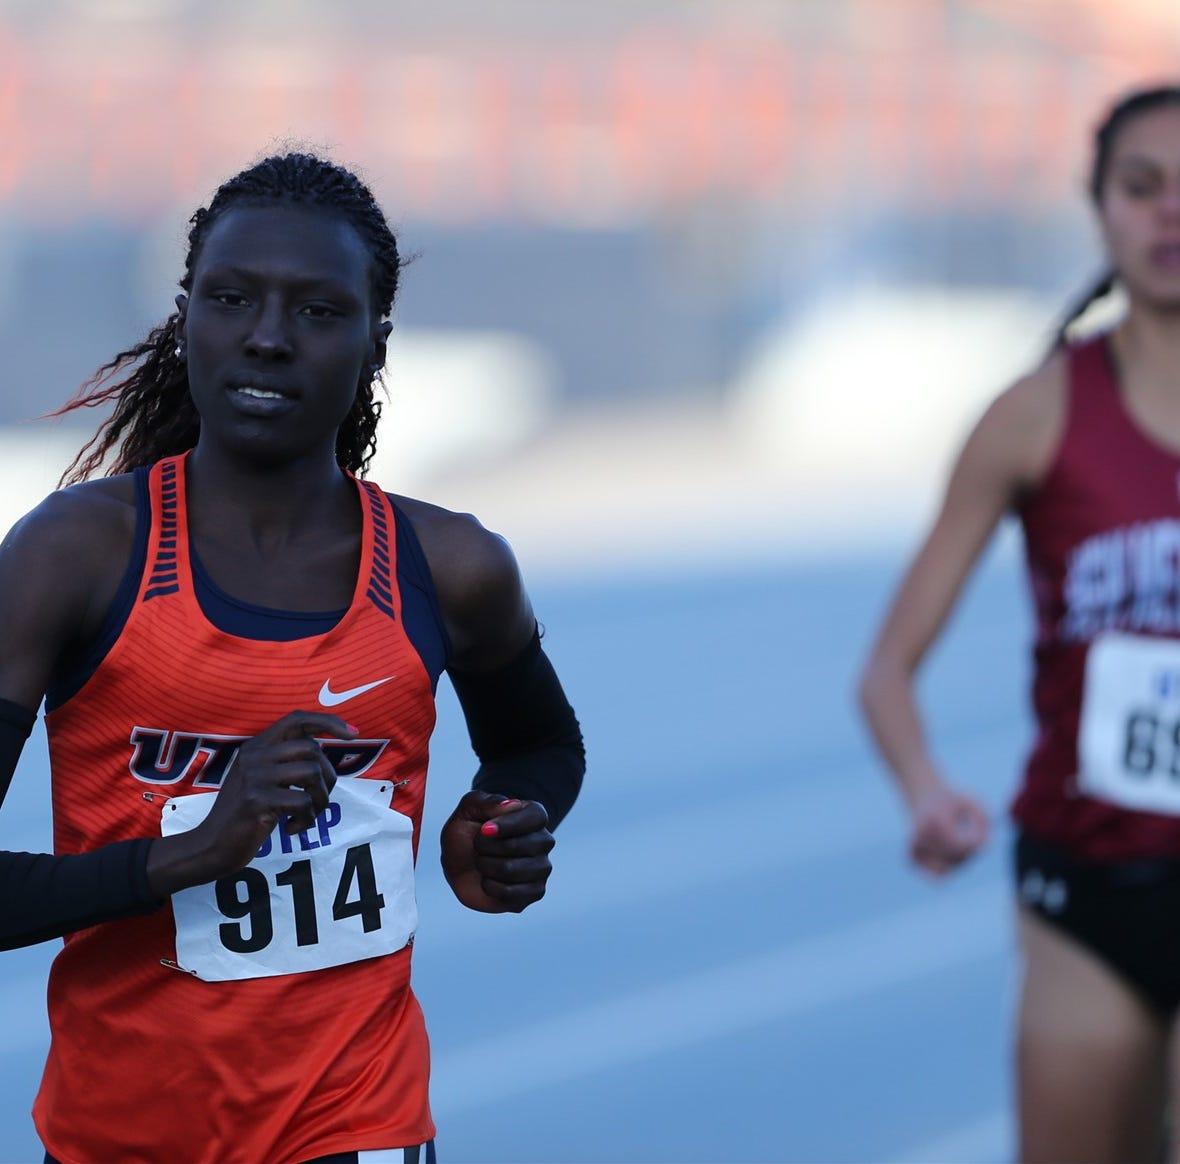 UTEP women's track team's triple crown bid comes up just short